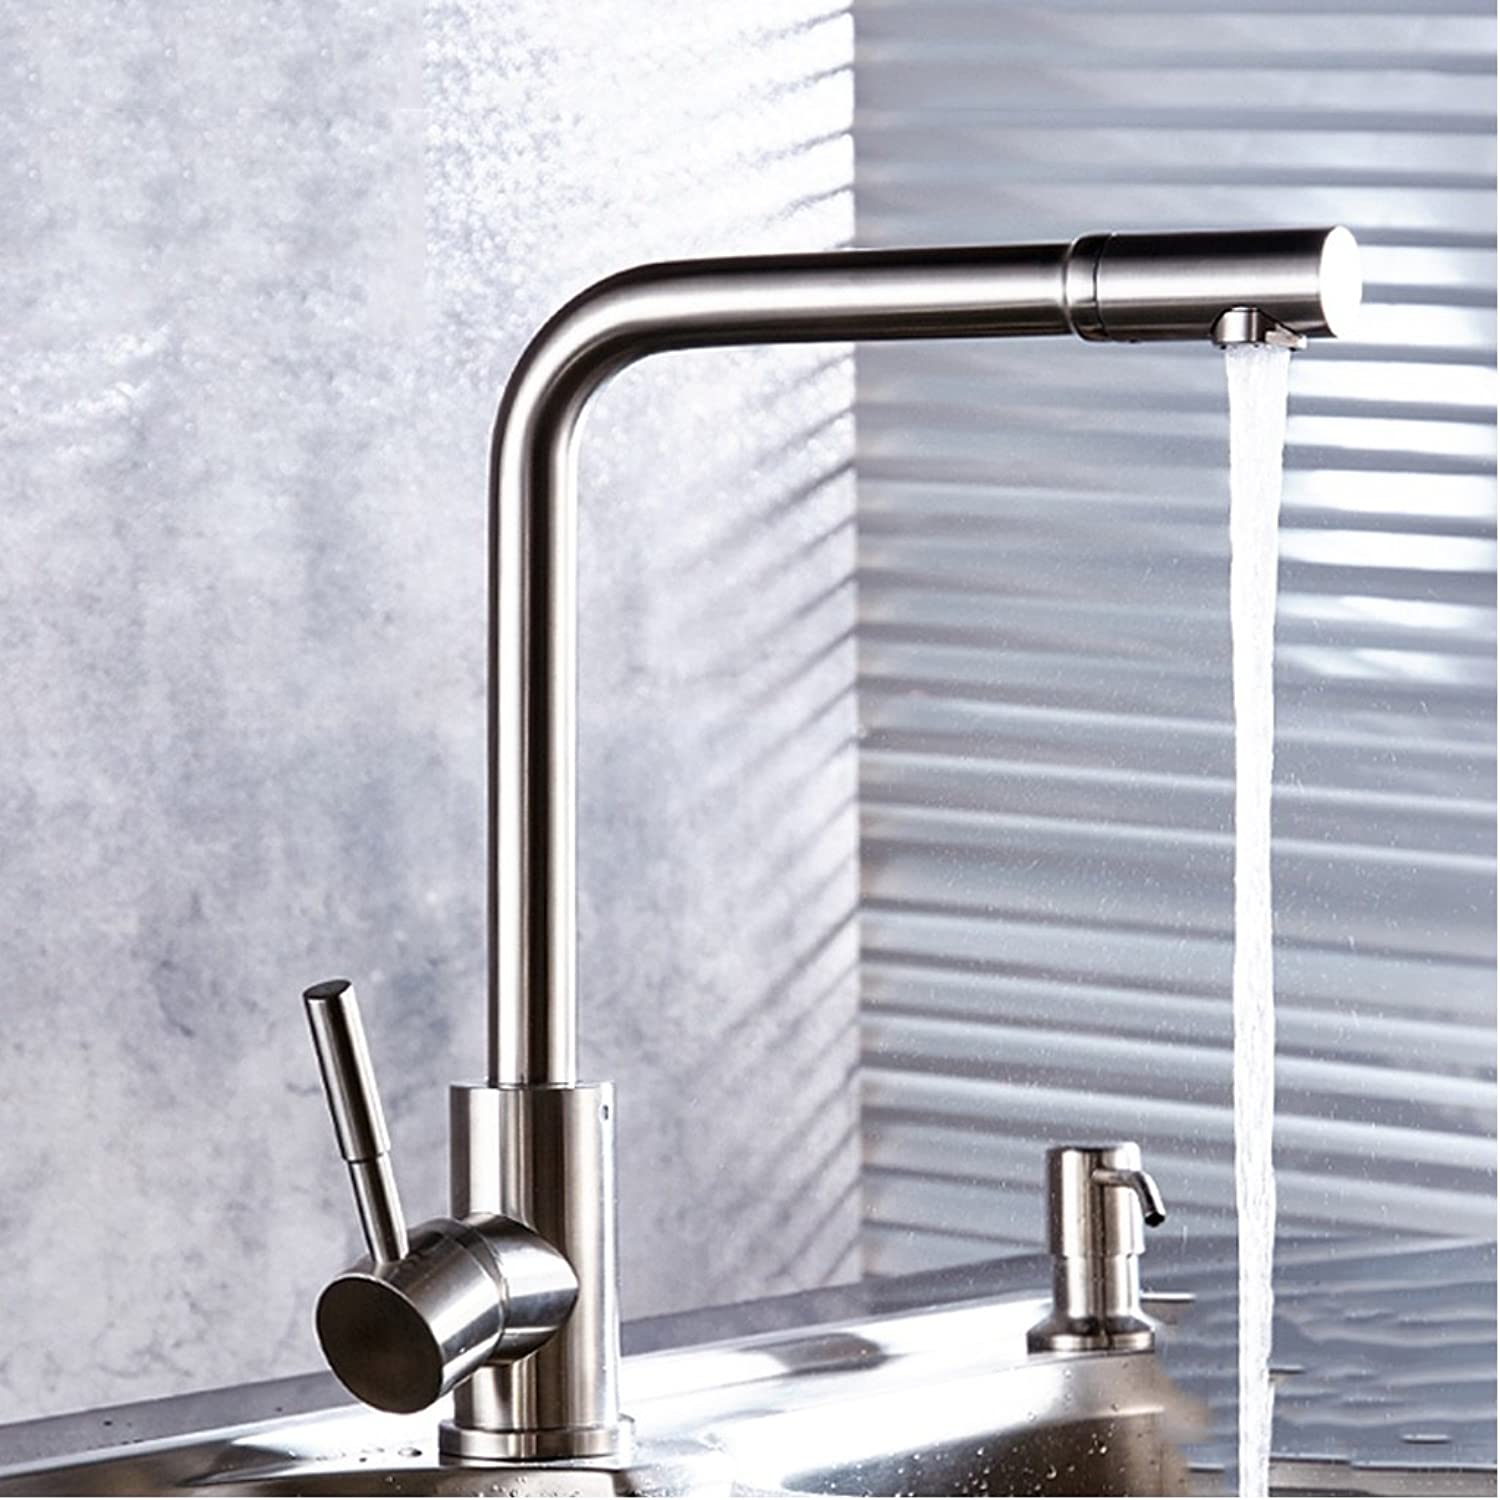 European-style Kitchen Faucet, 304 Stainless Steel Faucet, Kitchen Lead-free Sinks Caipen Leading ( color   C )